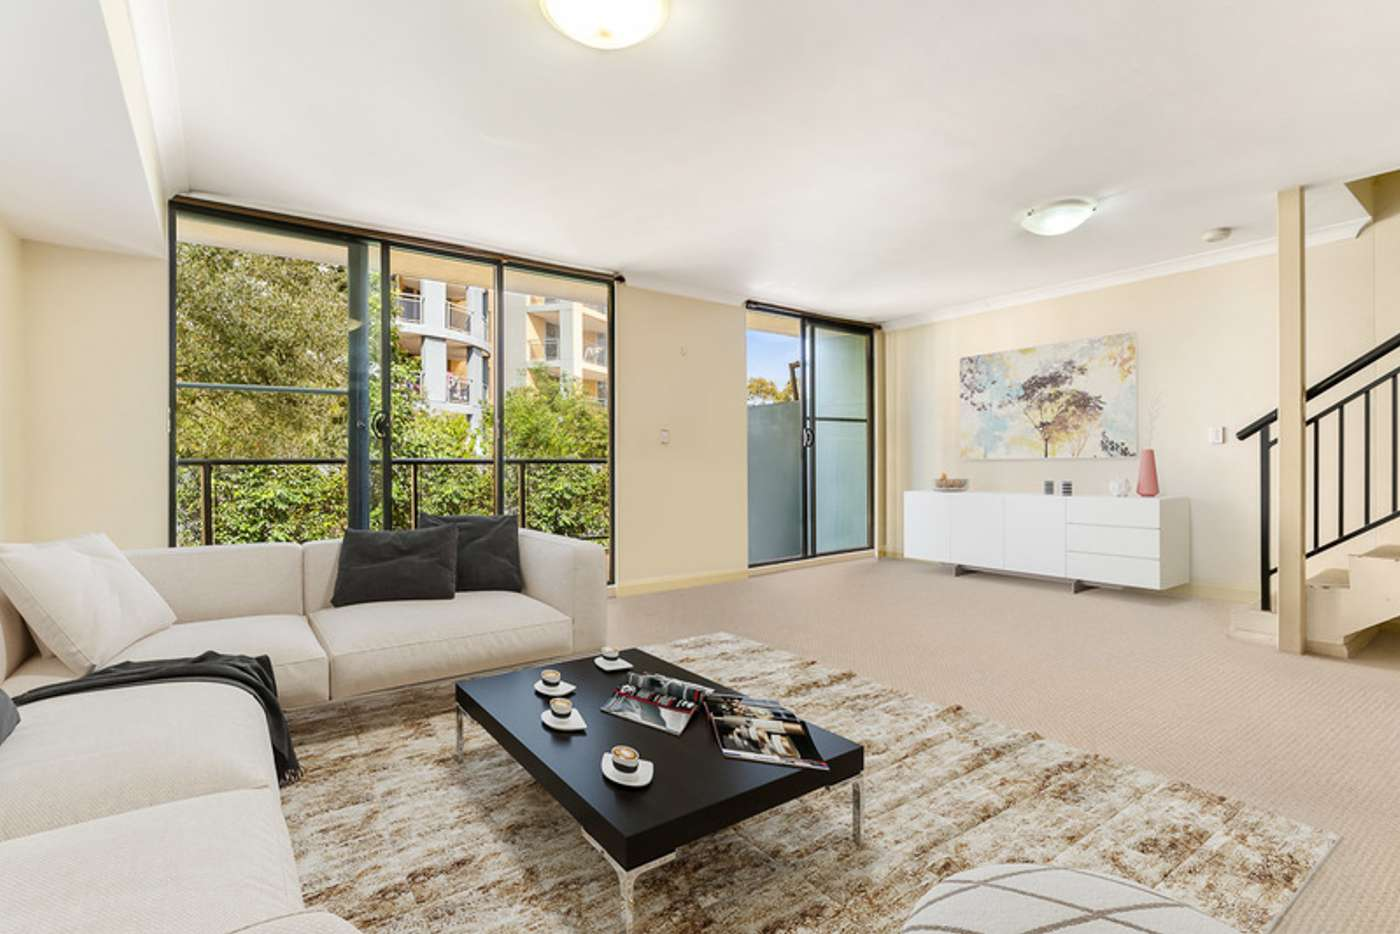 Main view of Homely apartment listing, 59/1-4 The Crescent, Strathfield NSW 2135